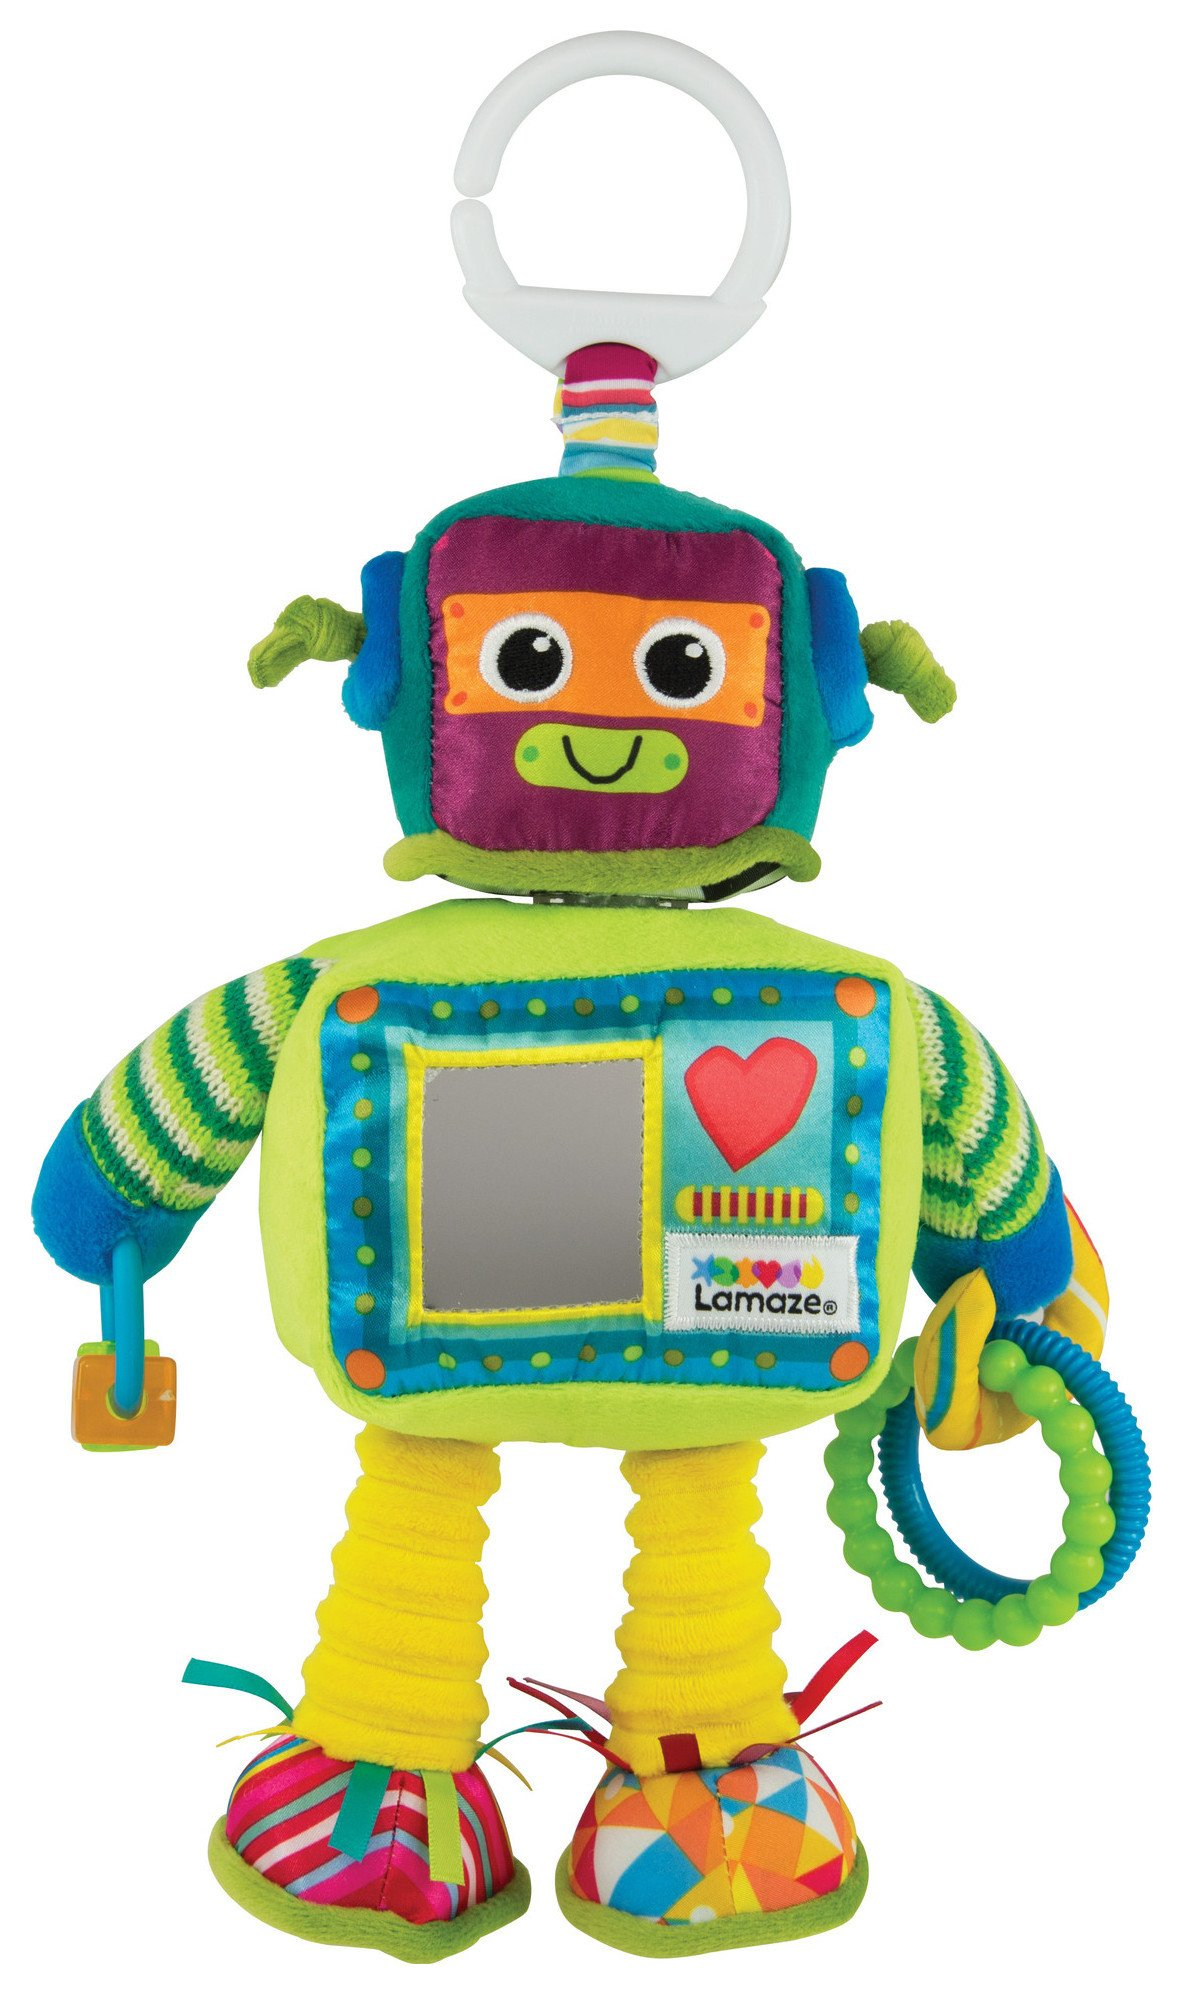 Tomy Lamaze Rusty the Robot. from Lamaze